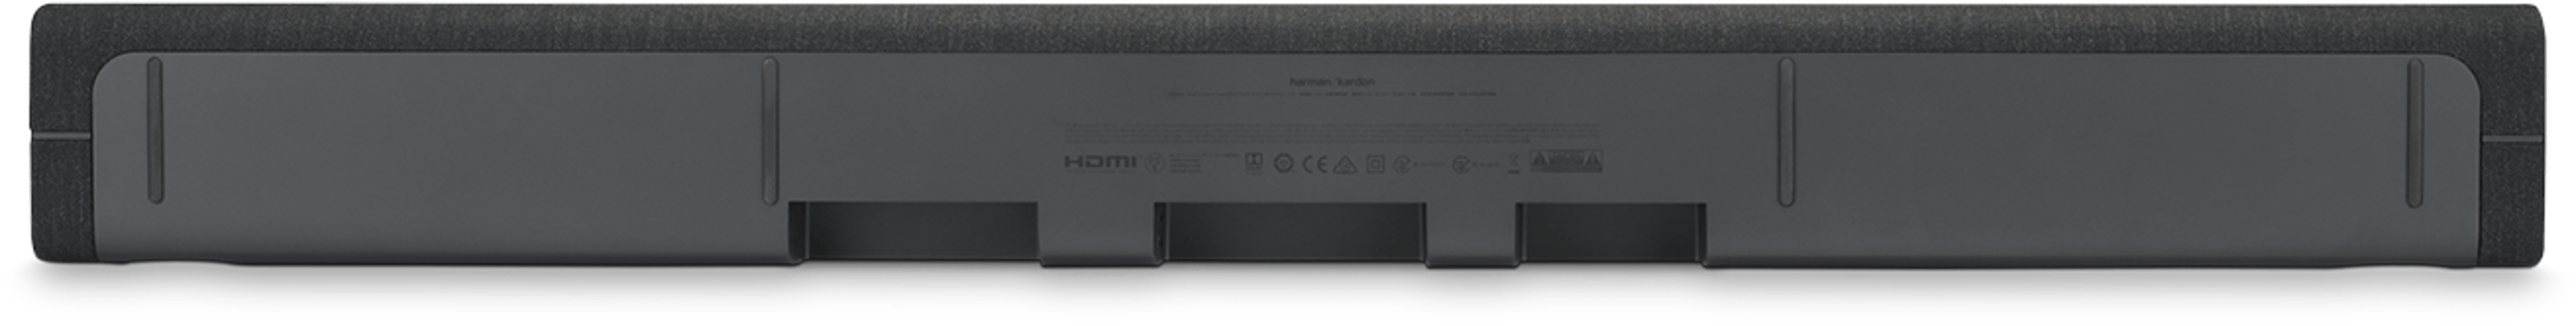 harman/kardon Citation Bar (Schwarz) - Soundbar mit Sprachsteuerung - Multiroom-Lautsprecher - digitrends.ch